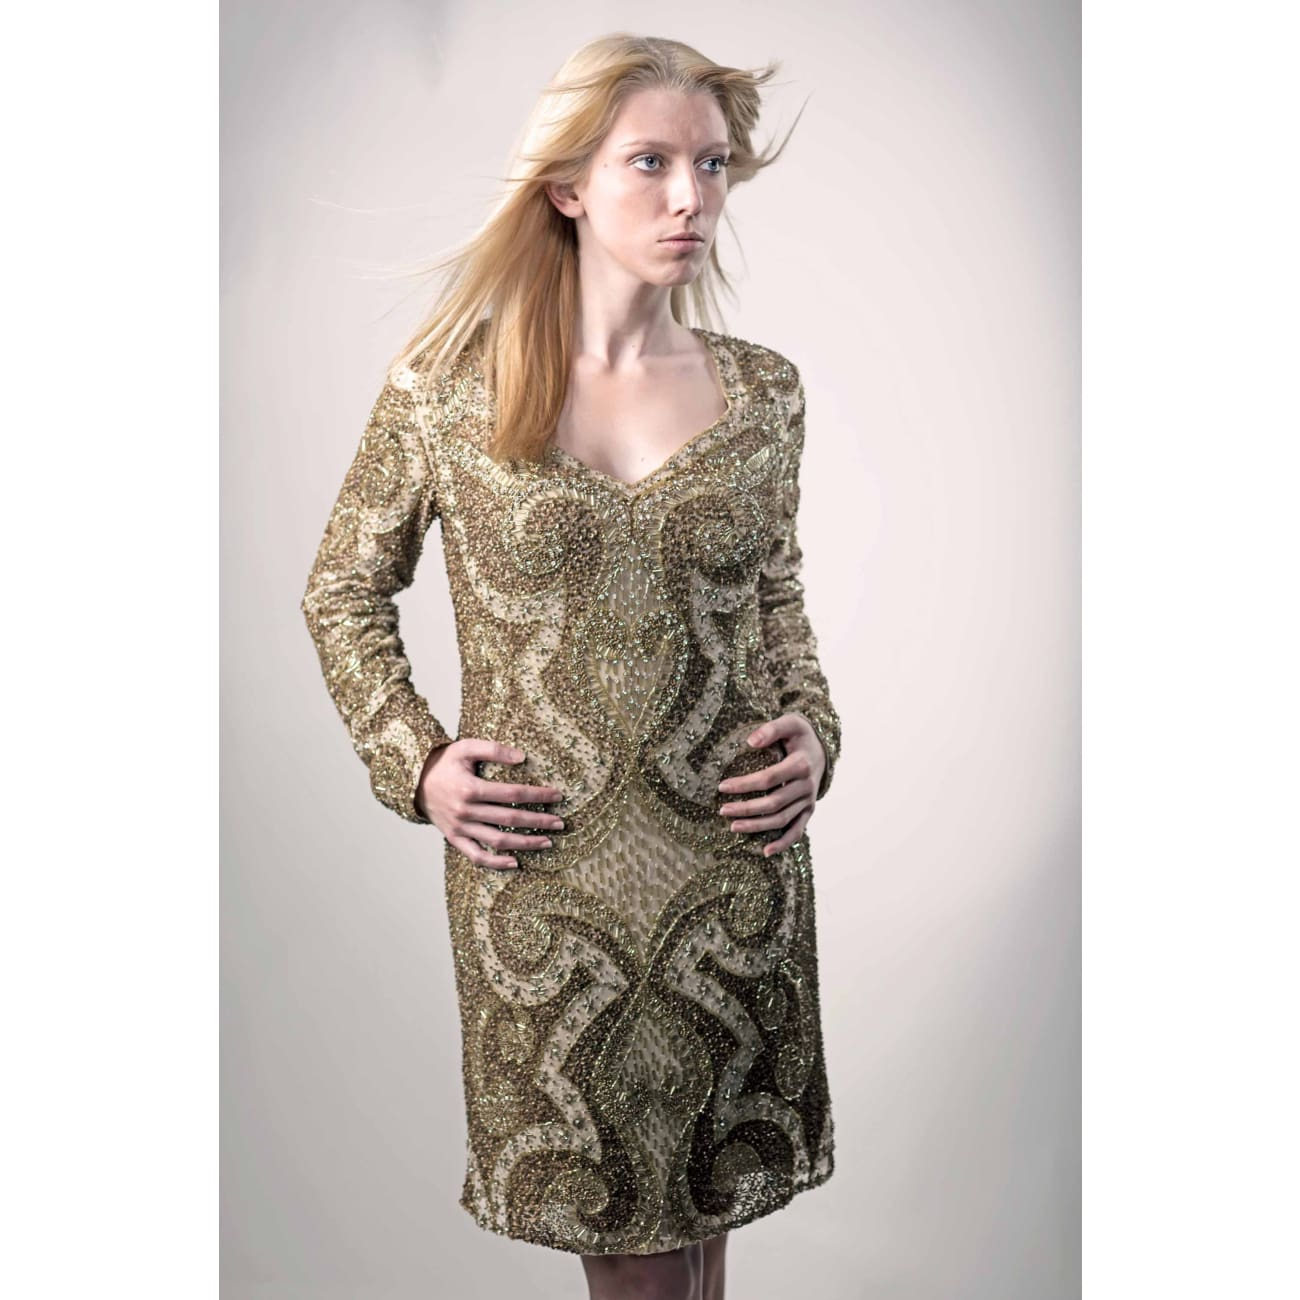 Gold Cocktail Dress- Only 2 Left!!! Dresses Sandhya Garg Free Shipping Custom Made United States bridal party dress Designer dress evening